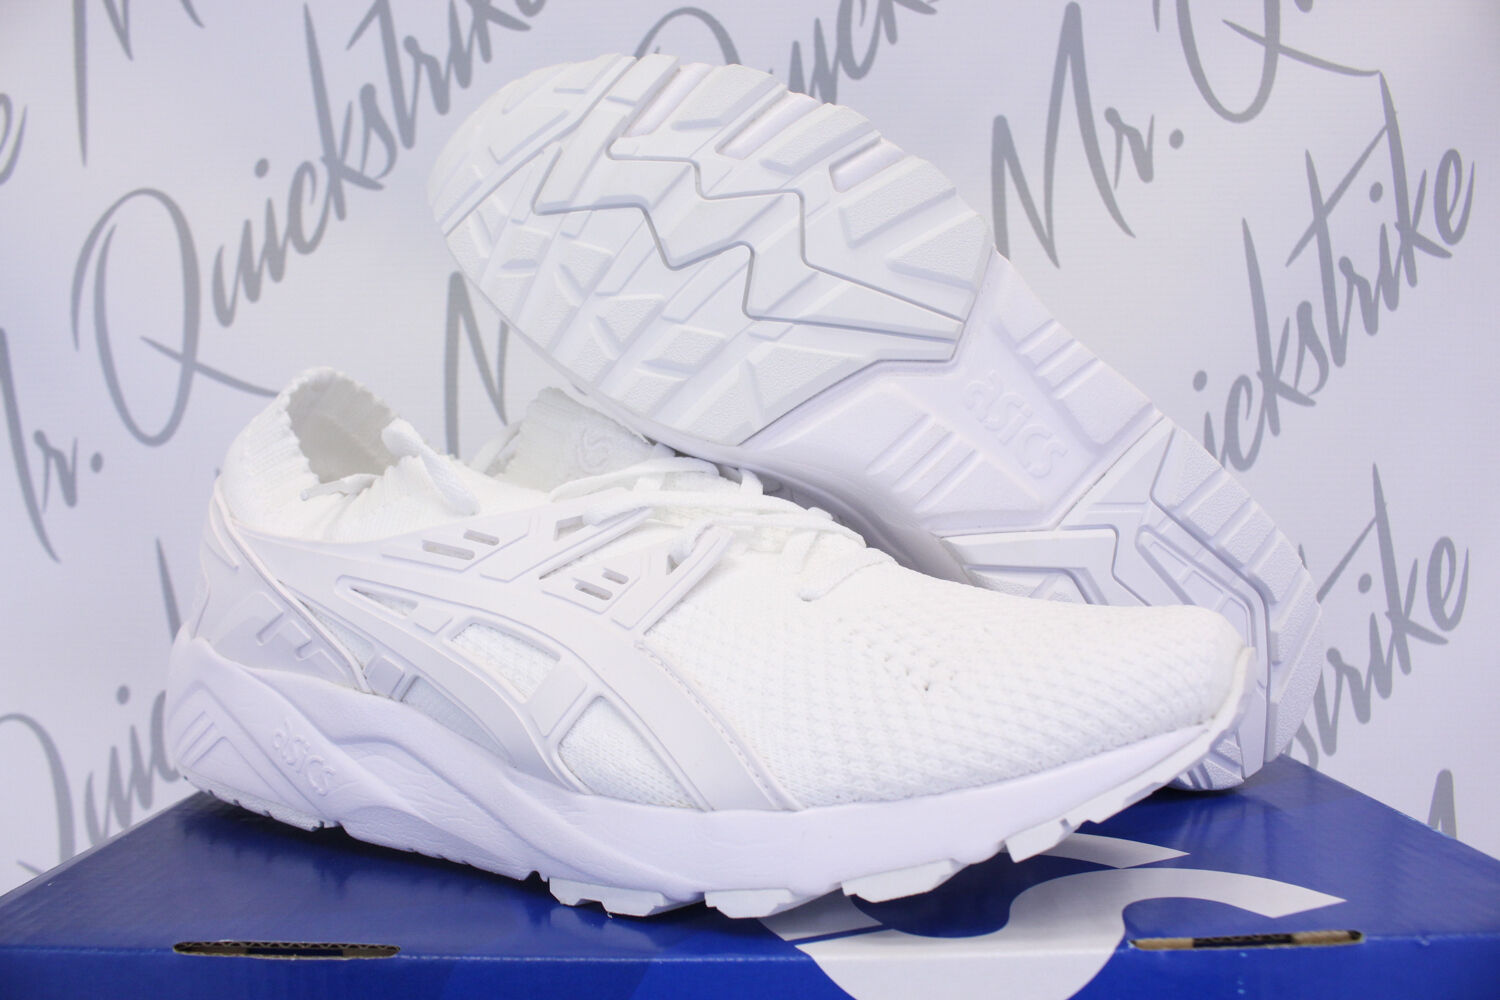 ASICS GEL KAYANO TRAINER KNIT SZ 10.5 TRIPLE WHITE H705N 0101